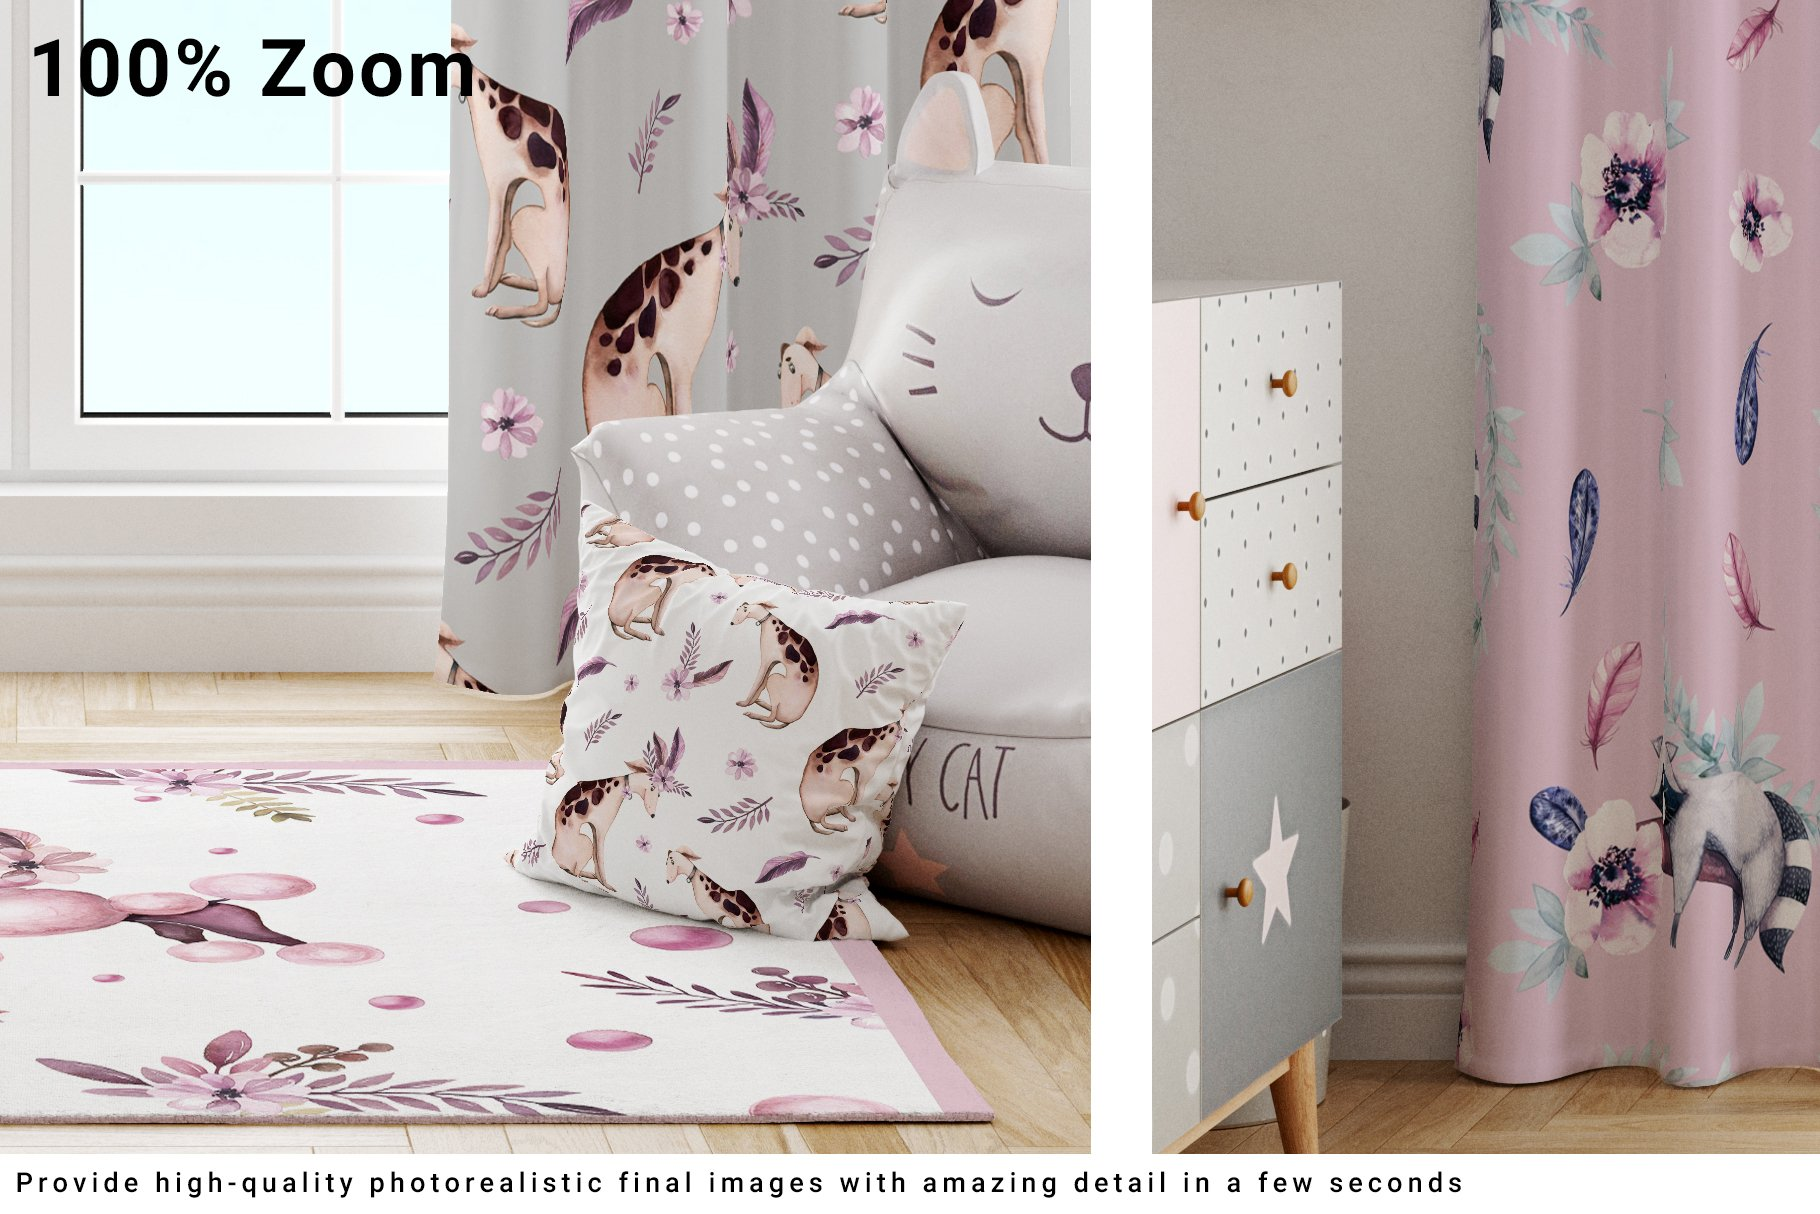 Kids Room - Curtains Carpet and Pillows Set example image 3